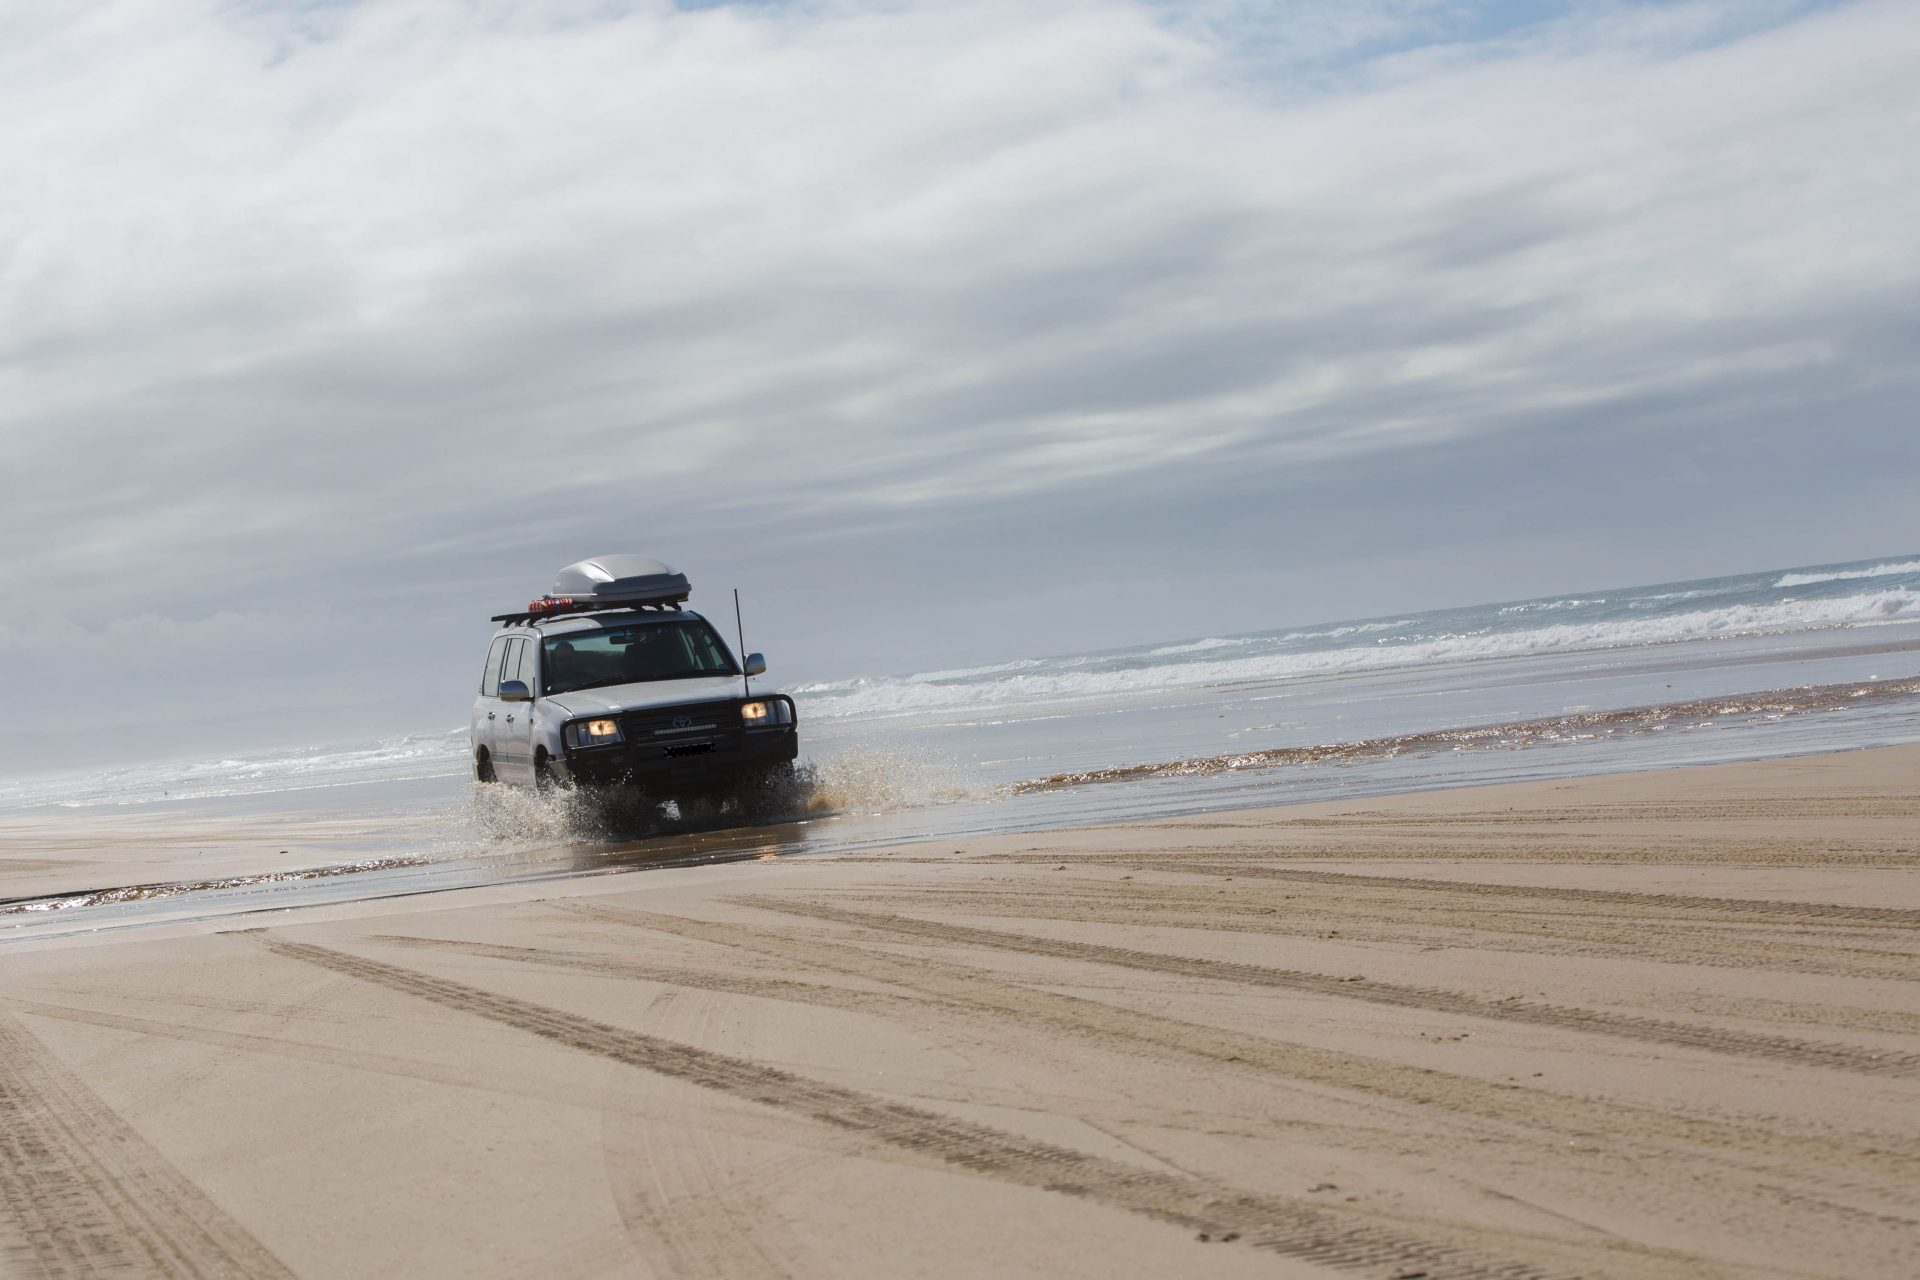 Driving south towards the barge pickup point, Fraser Island